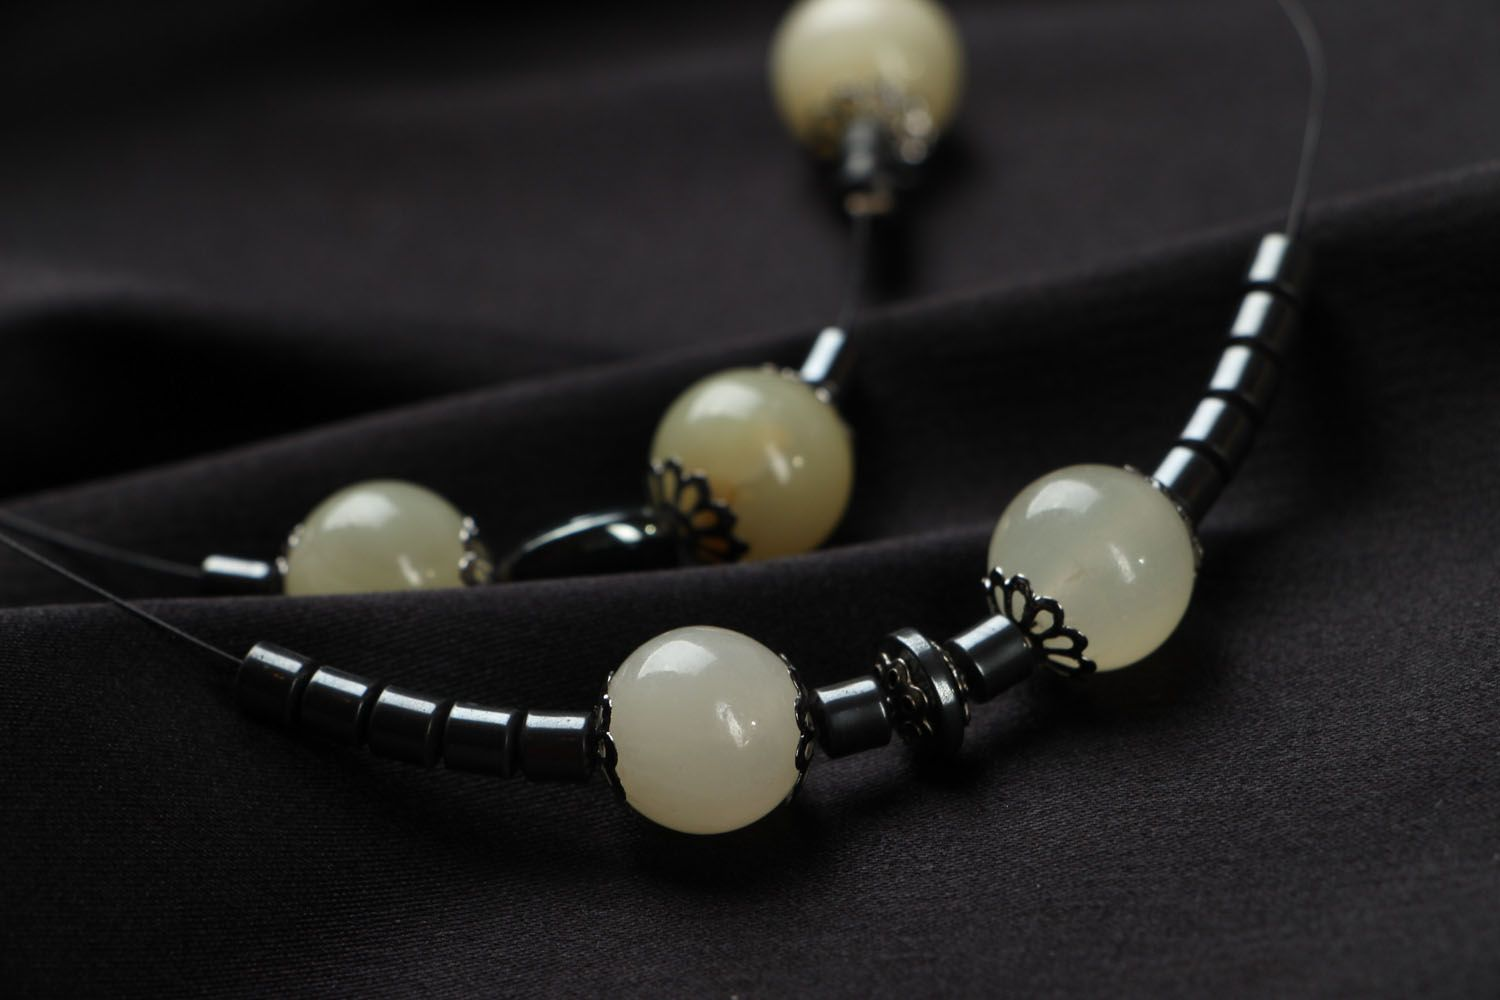 Necklace made of onyx and hematite photo 3